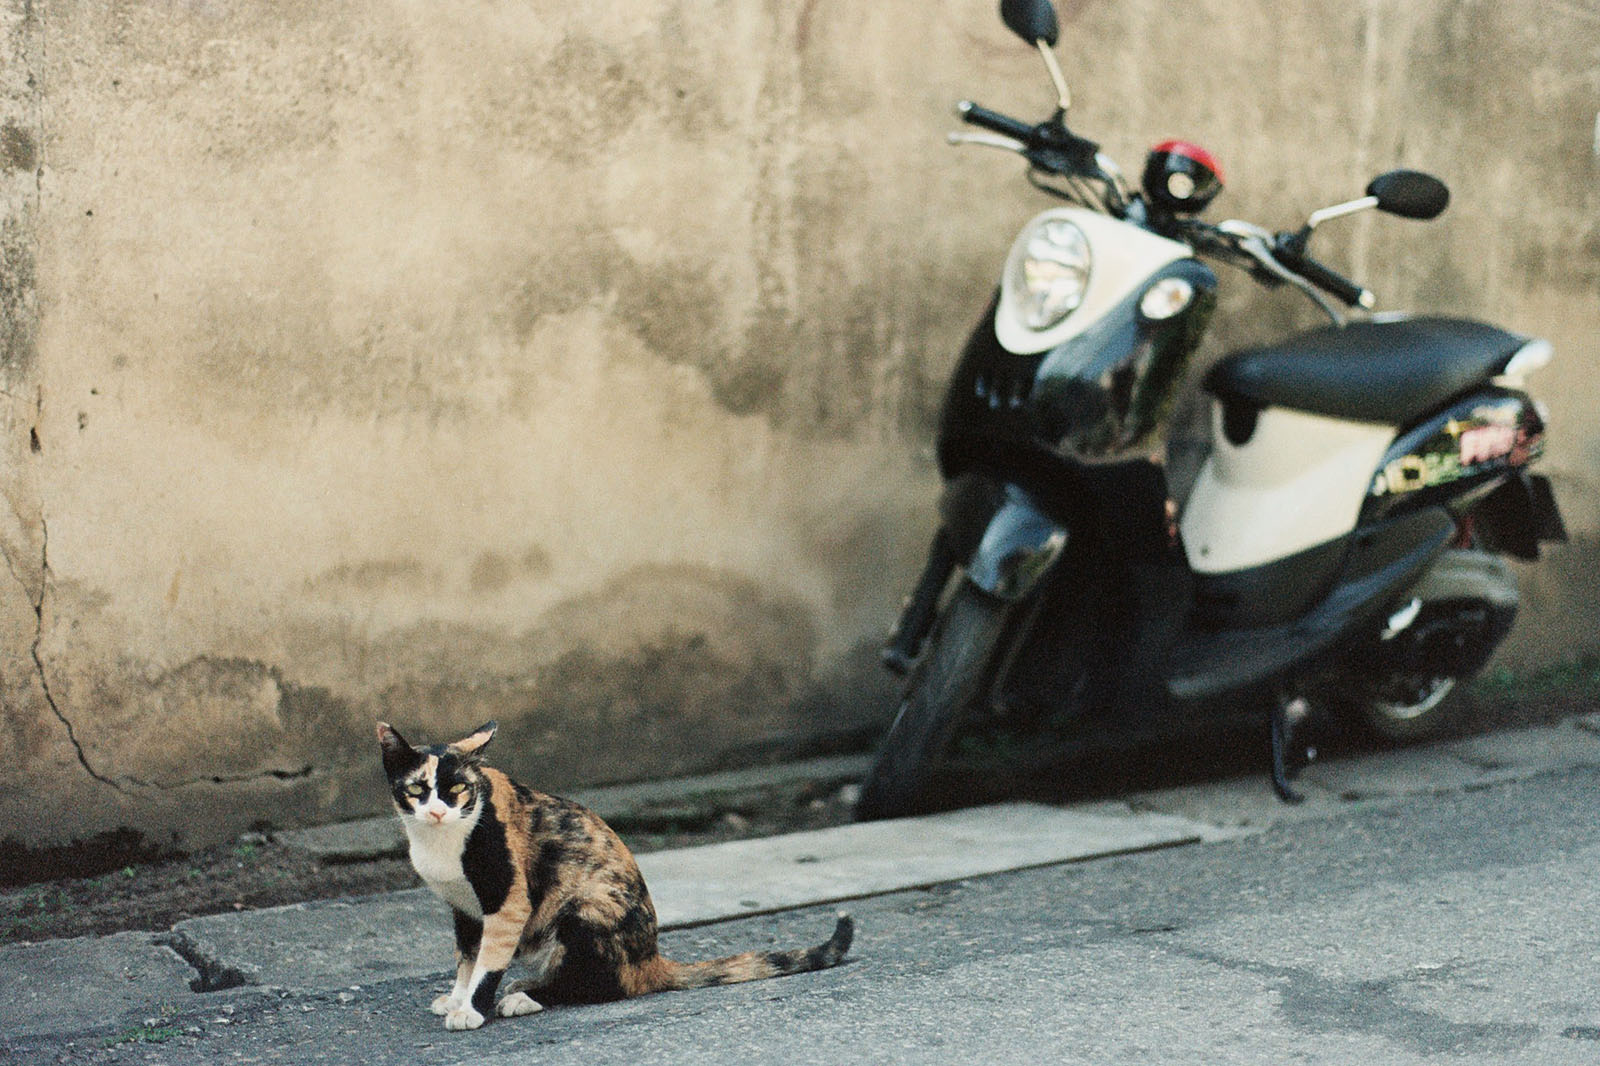 Street cat and a motorbike in Chiang Mai | Thailand Travel Photos